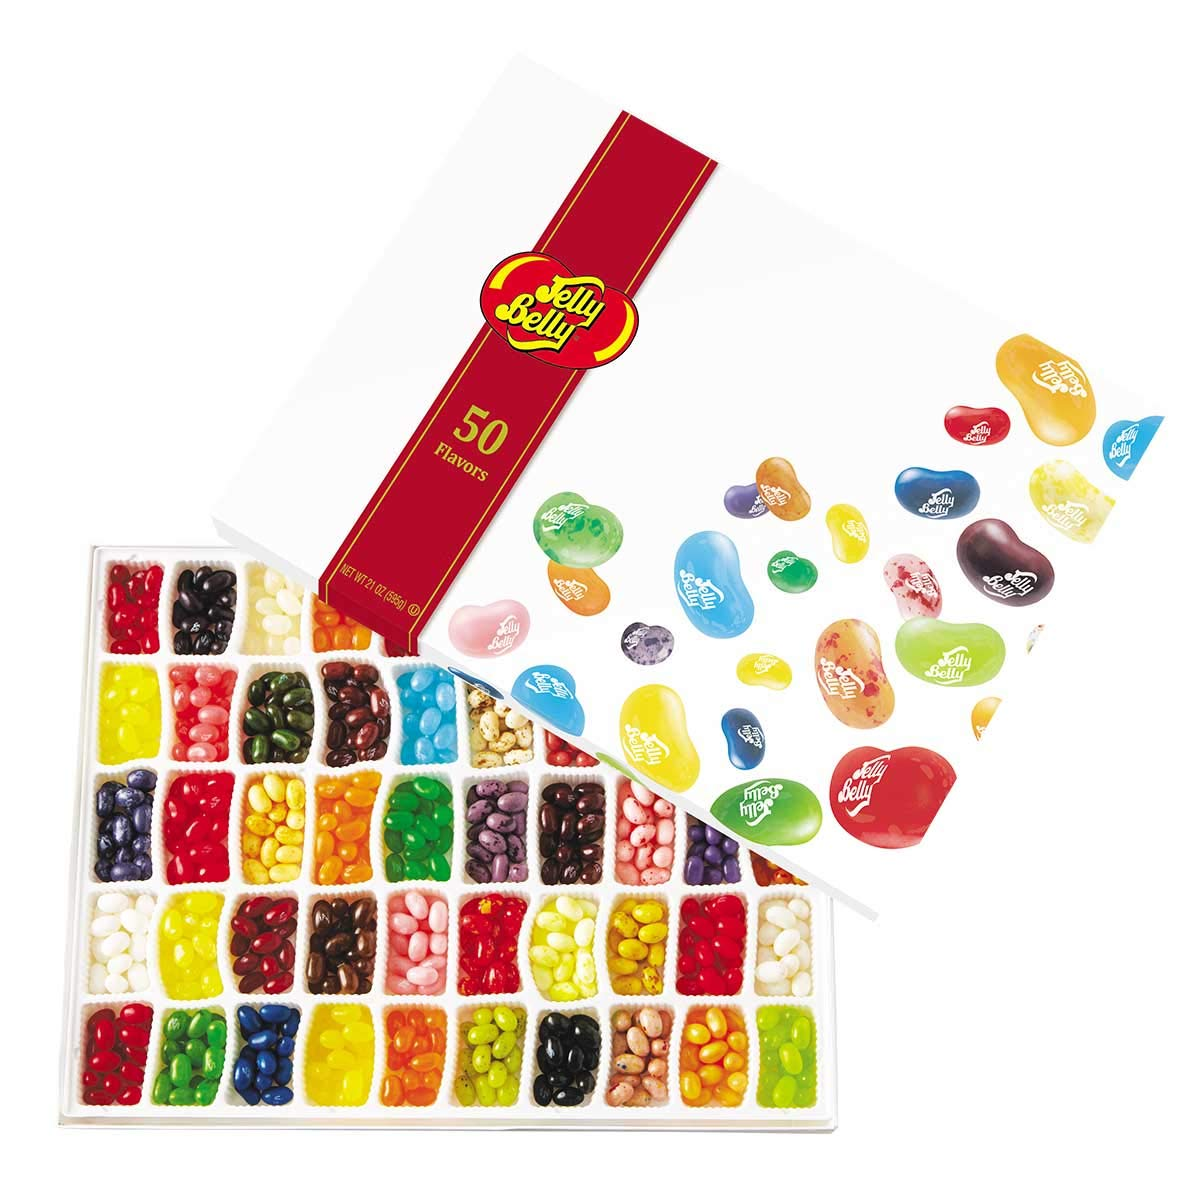 Jelly Belly Jelly Beans Gift Box, 21-Ounce by Jelly Belly